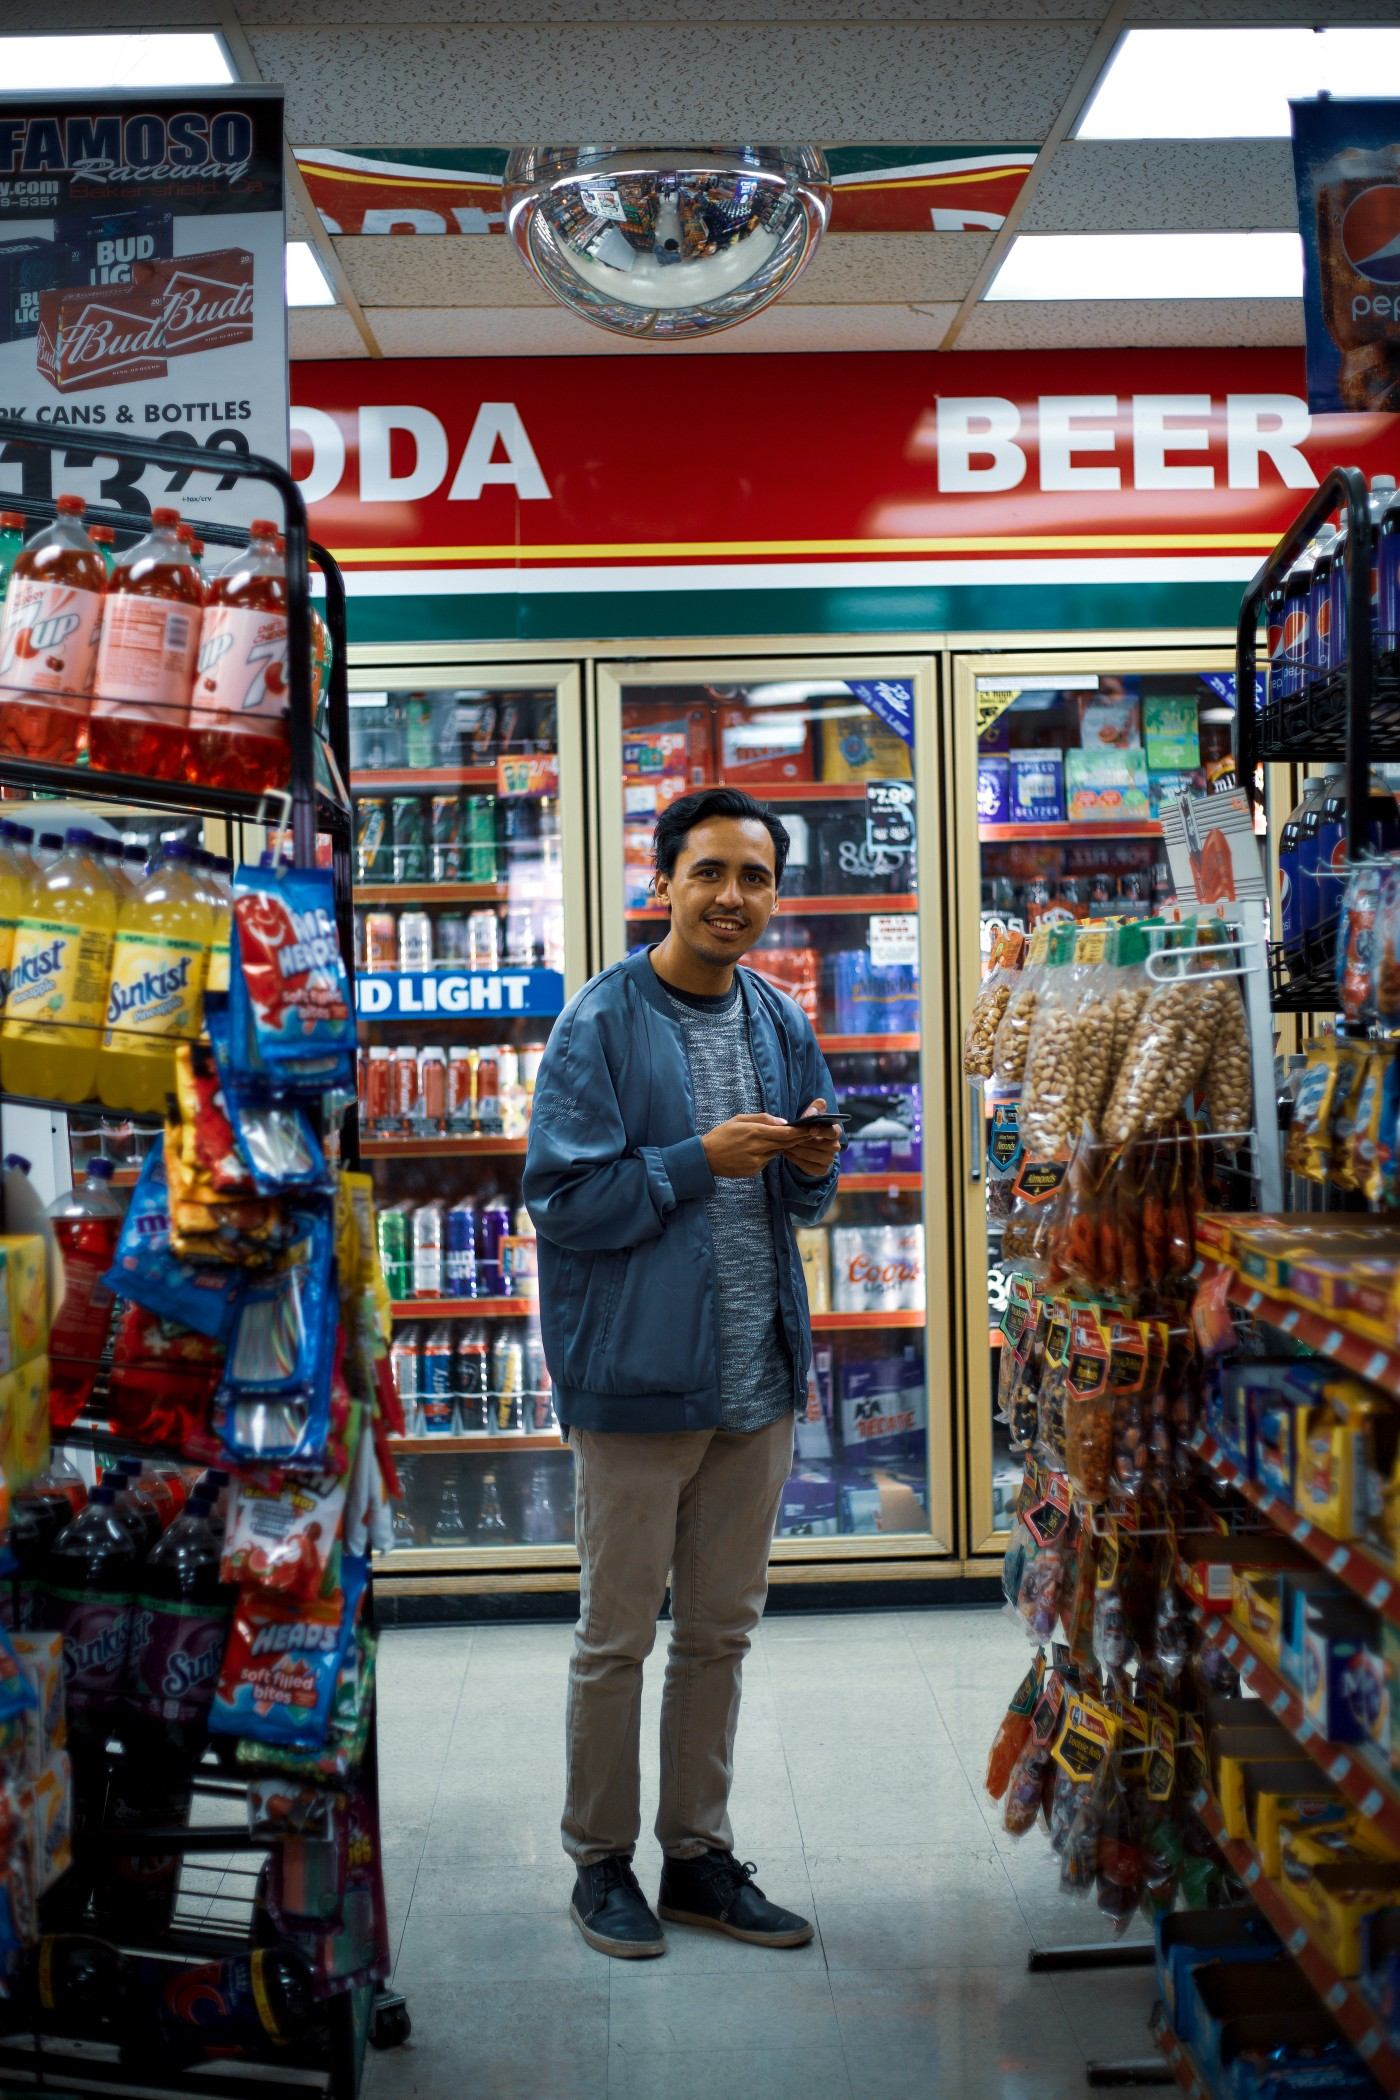 A man in a gas station smiling at the camera.